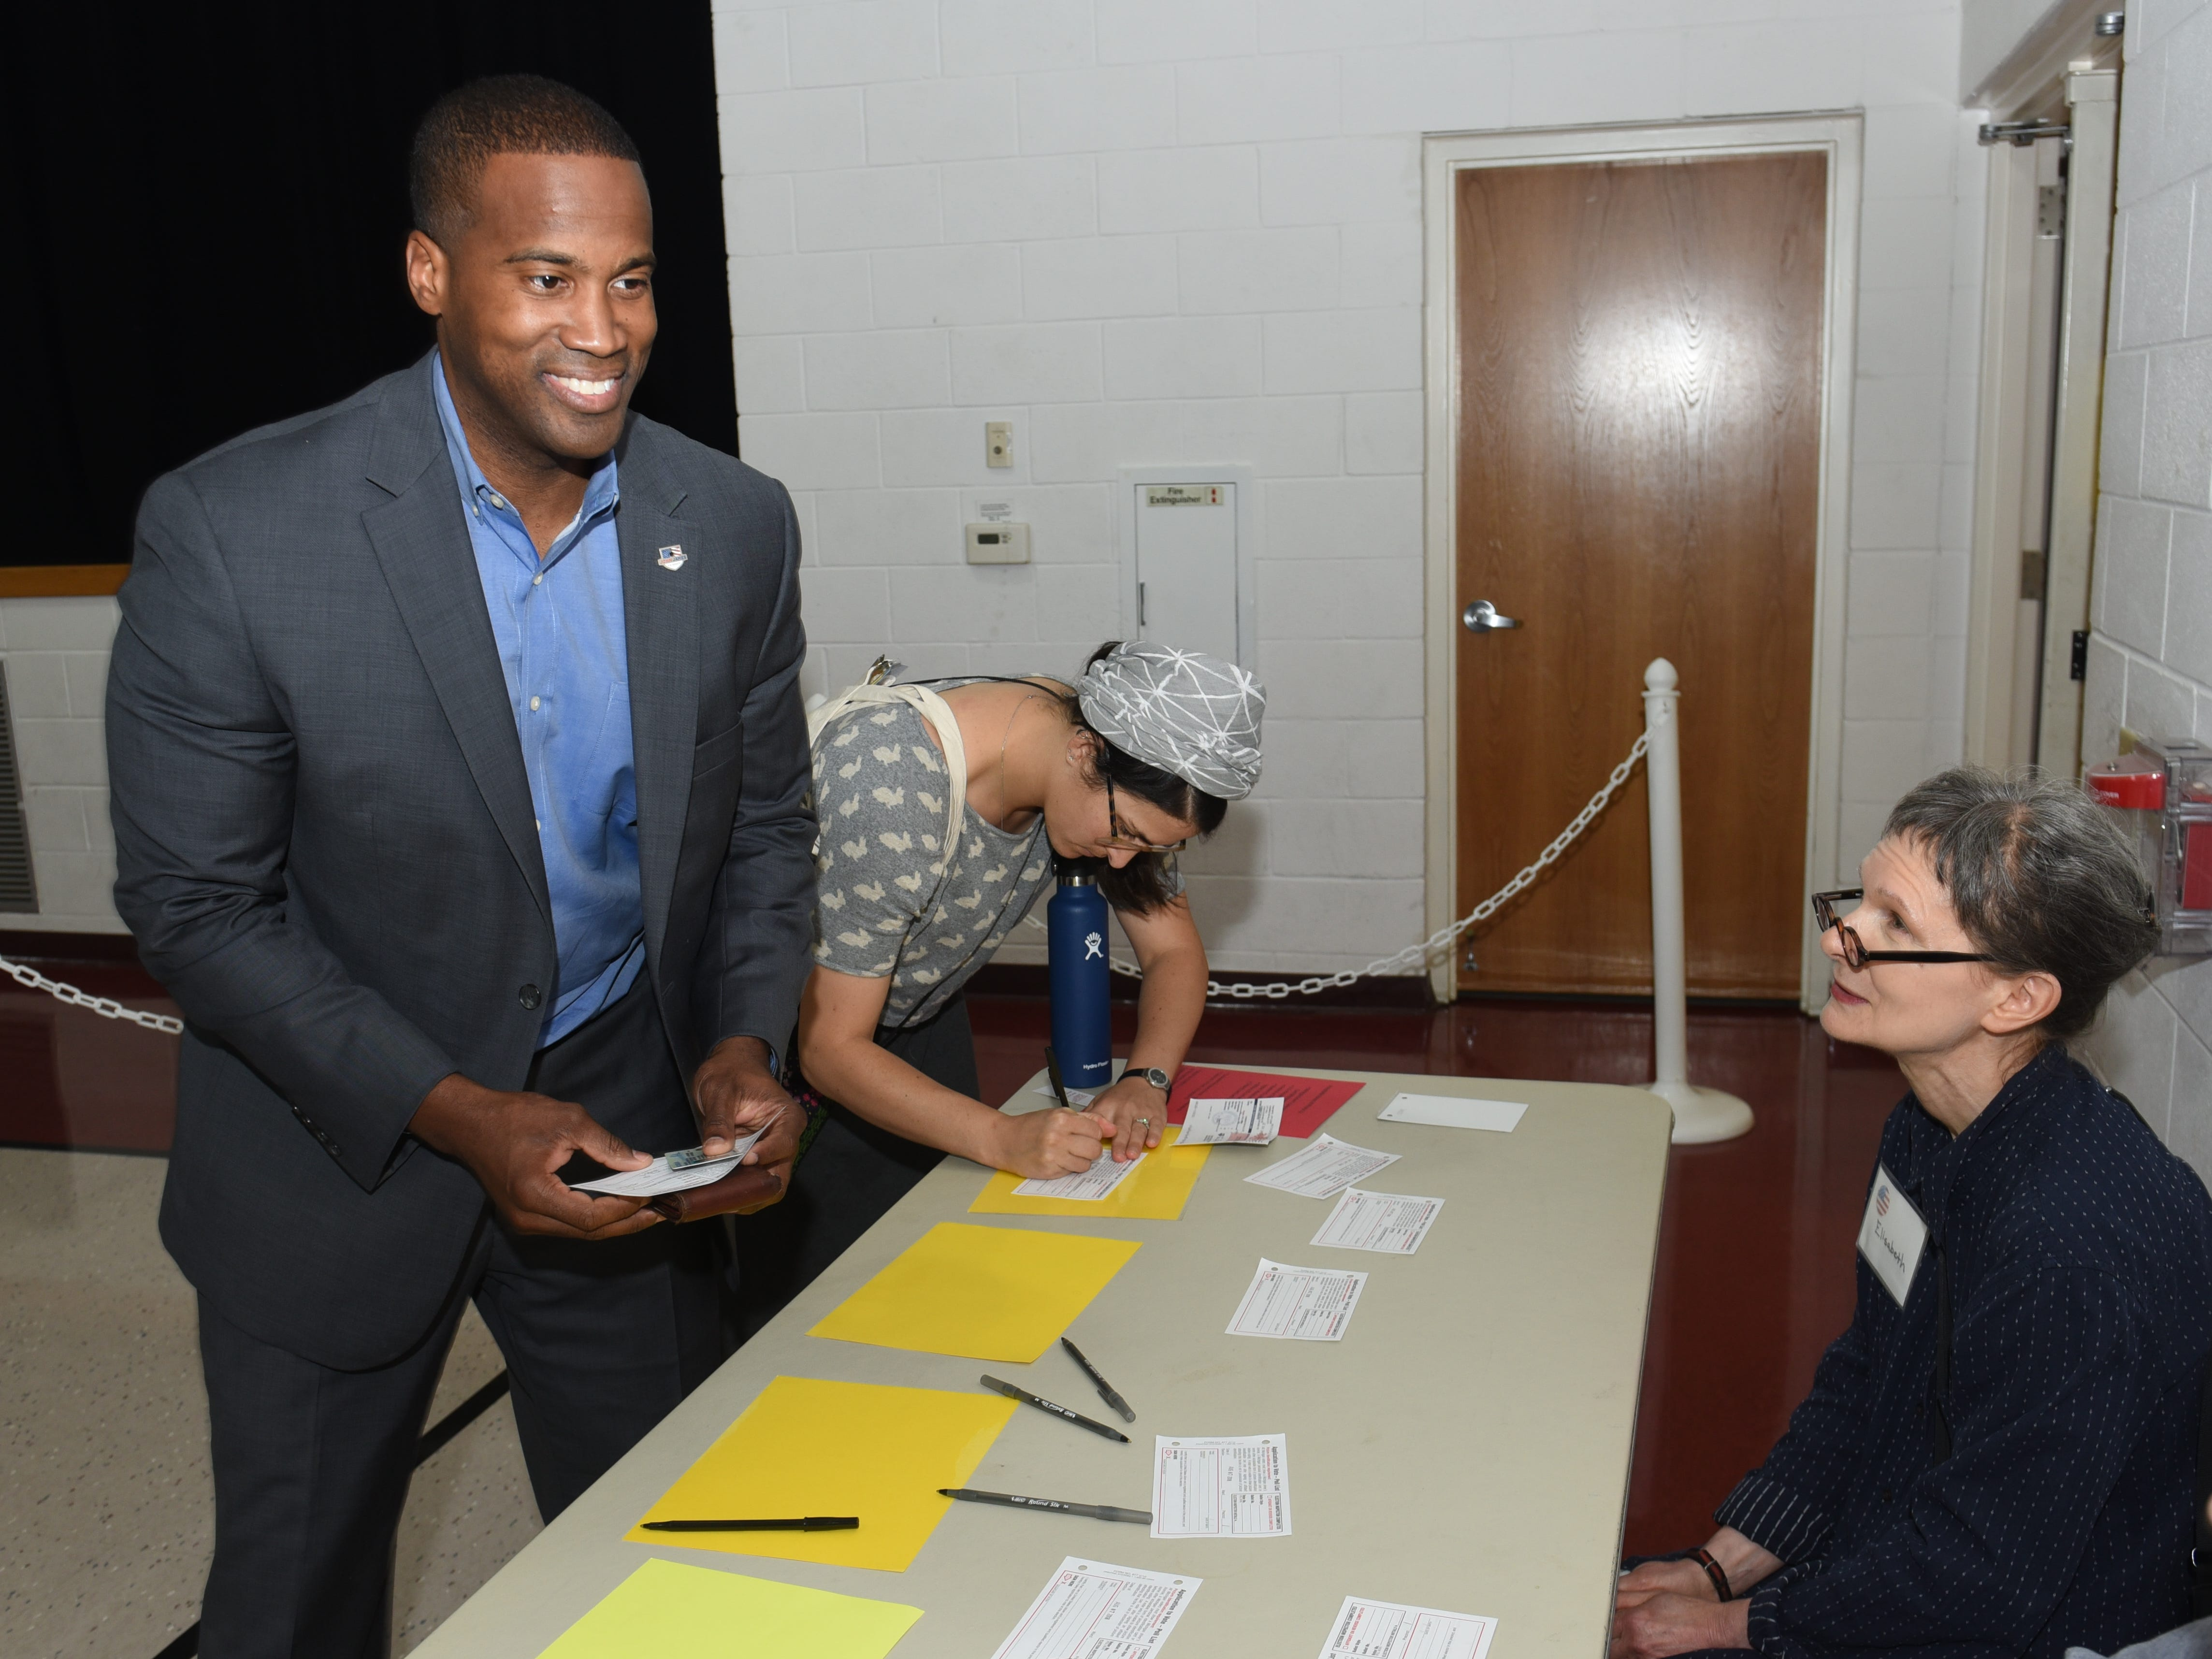 Republican U.S. Senate candidate John James fills out information to receive his ballot at Orchard United Methodist Church in Farmington Hills.